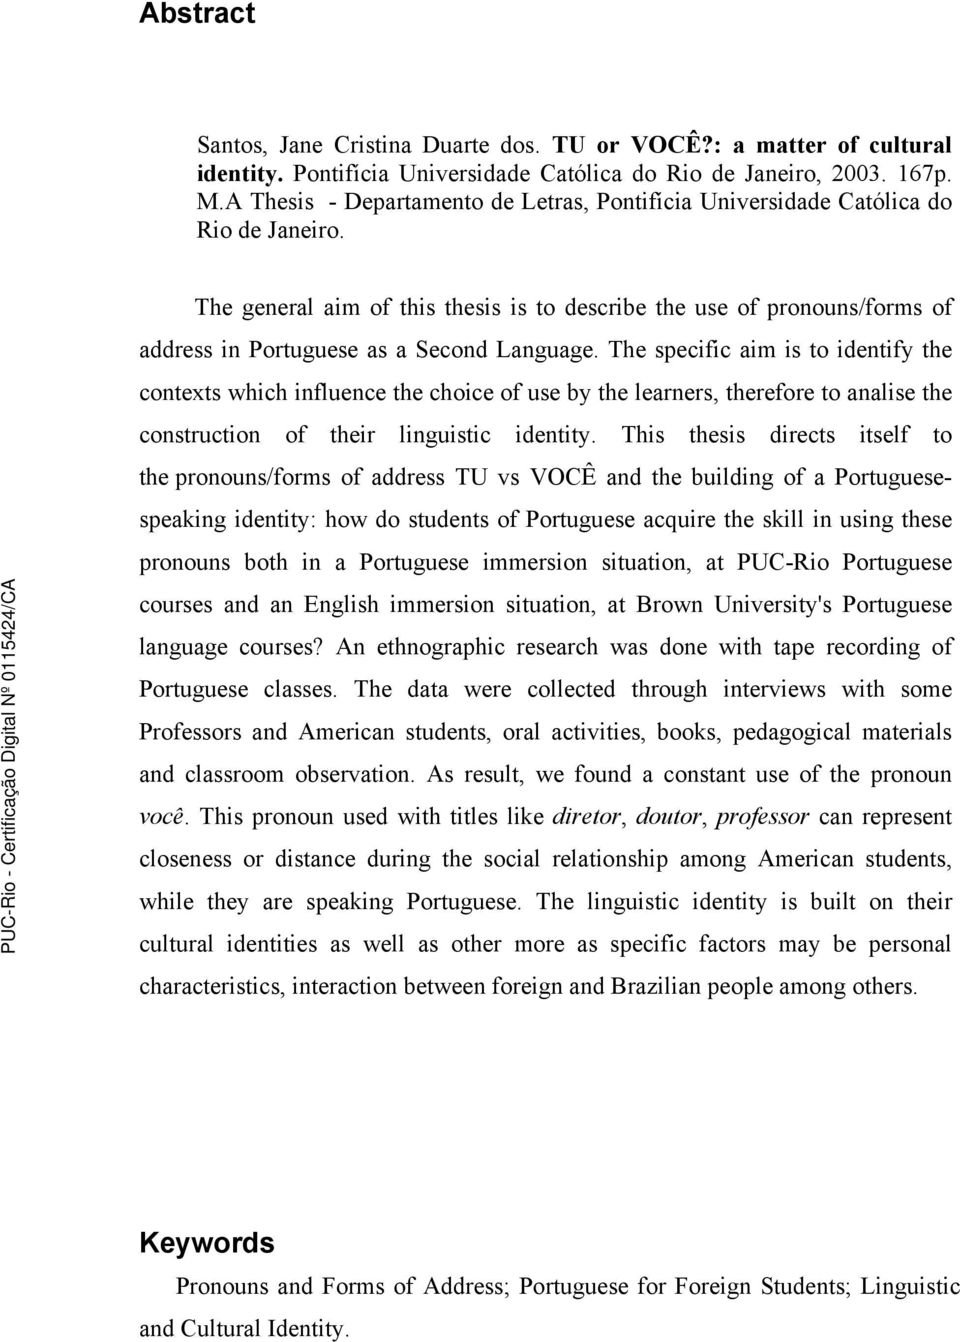 The general aim of this thesis is to describe the use of pronouns/forms of address in Portuguese as a Second Language.